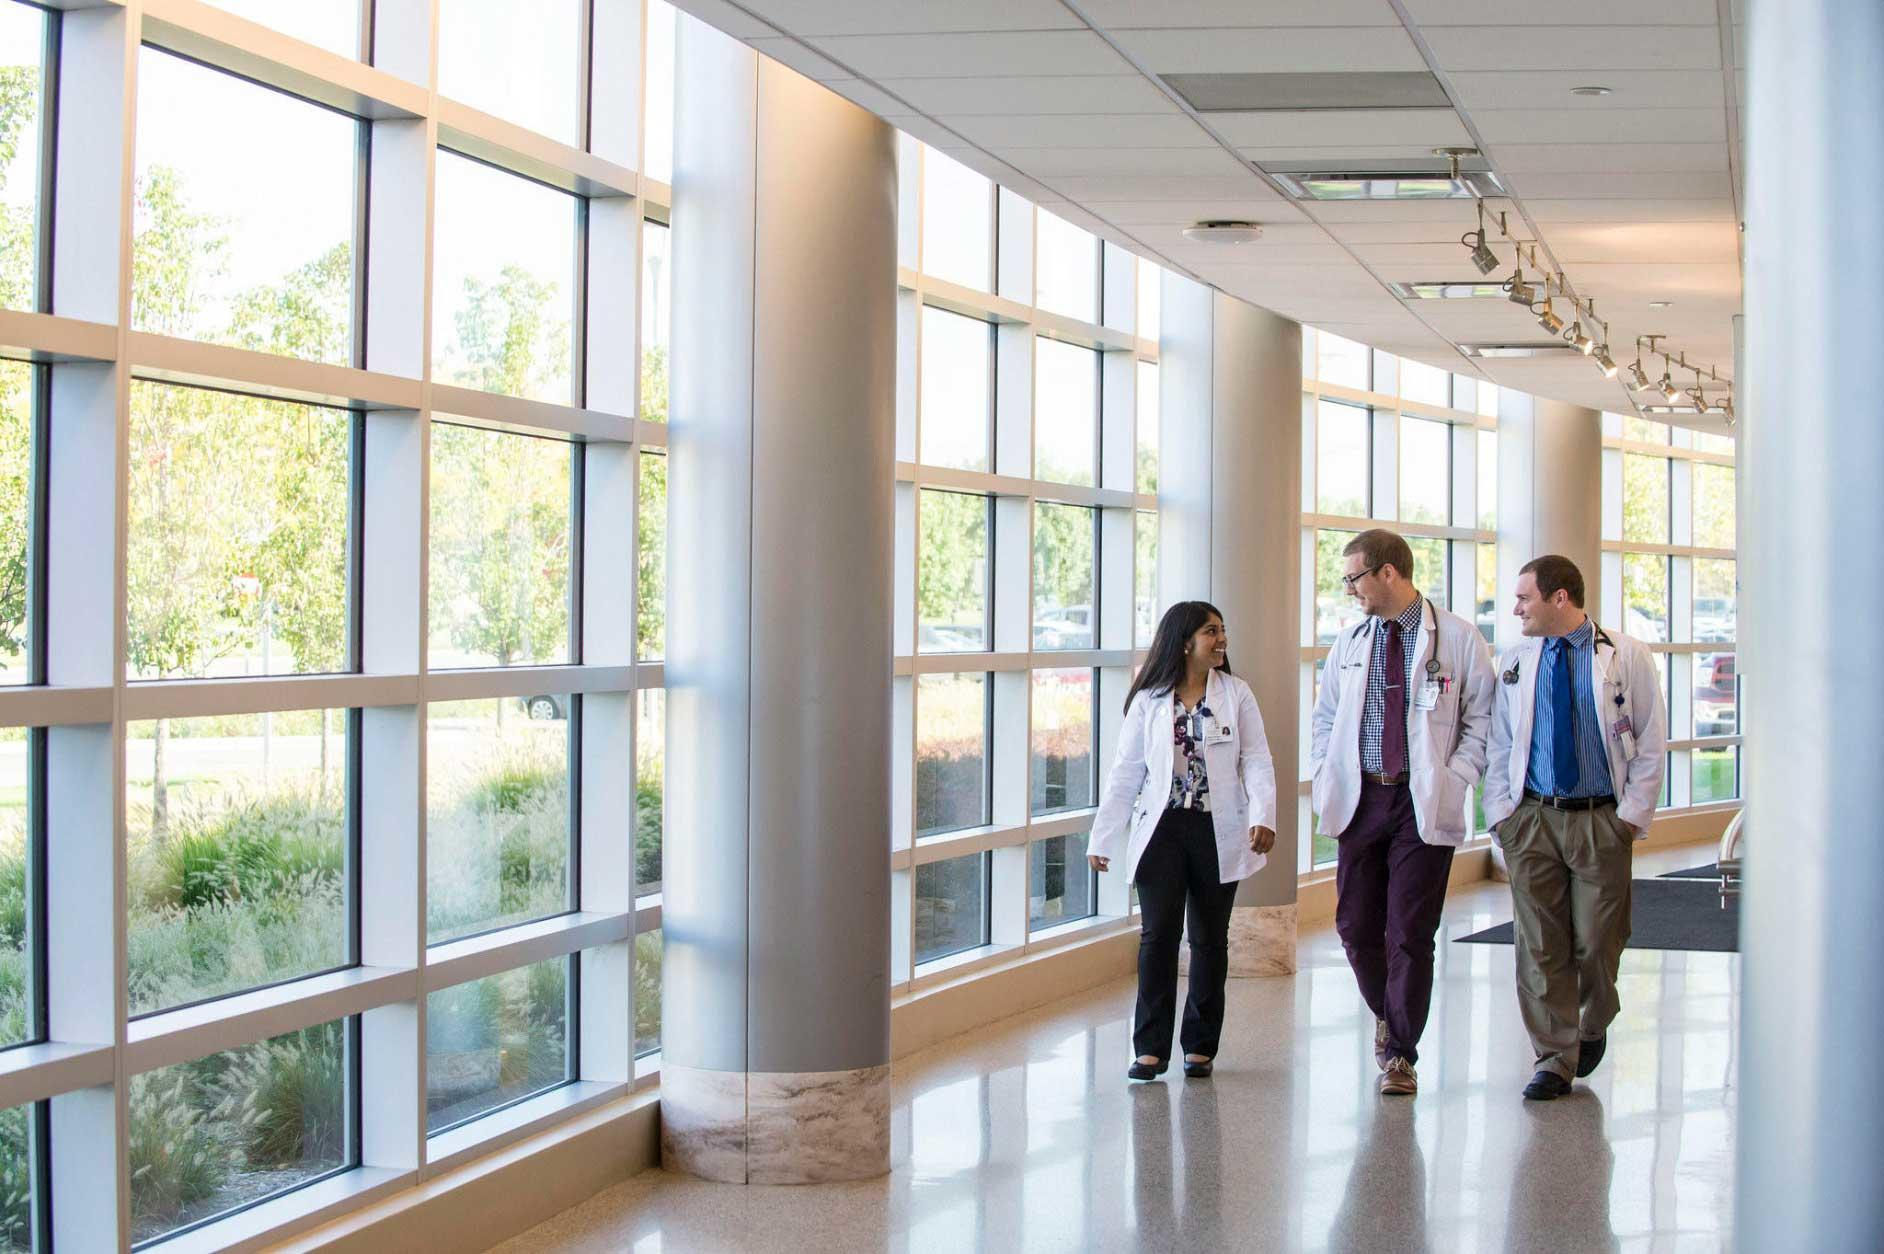 Doctors walking through hall